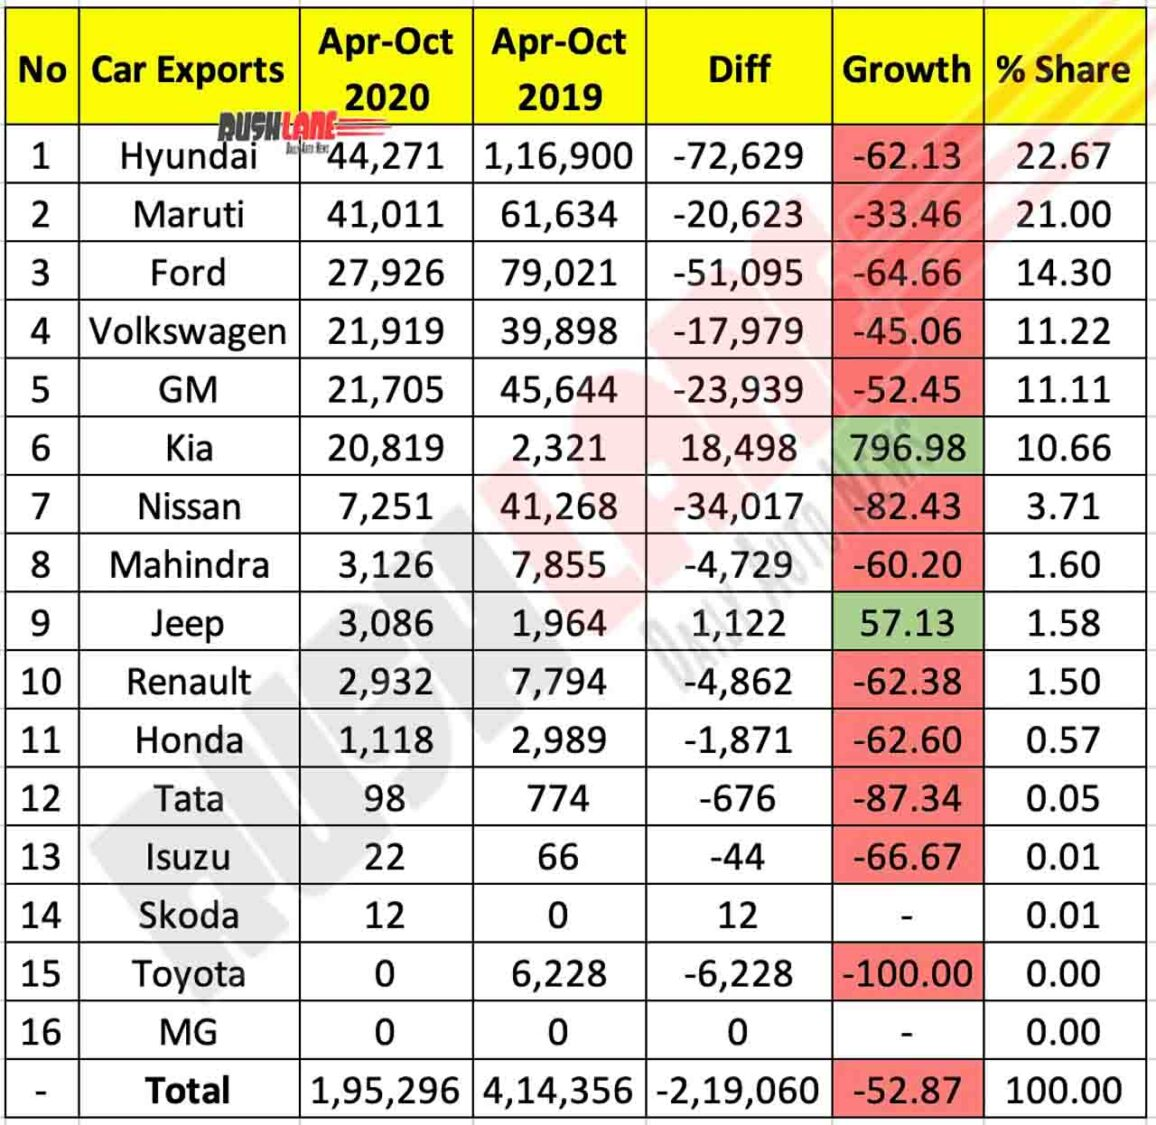 Car Exports Apr-Oct 2020